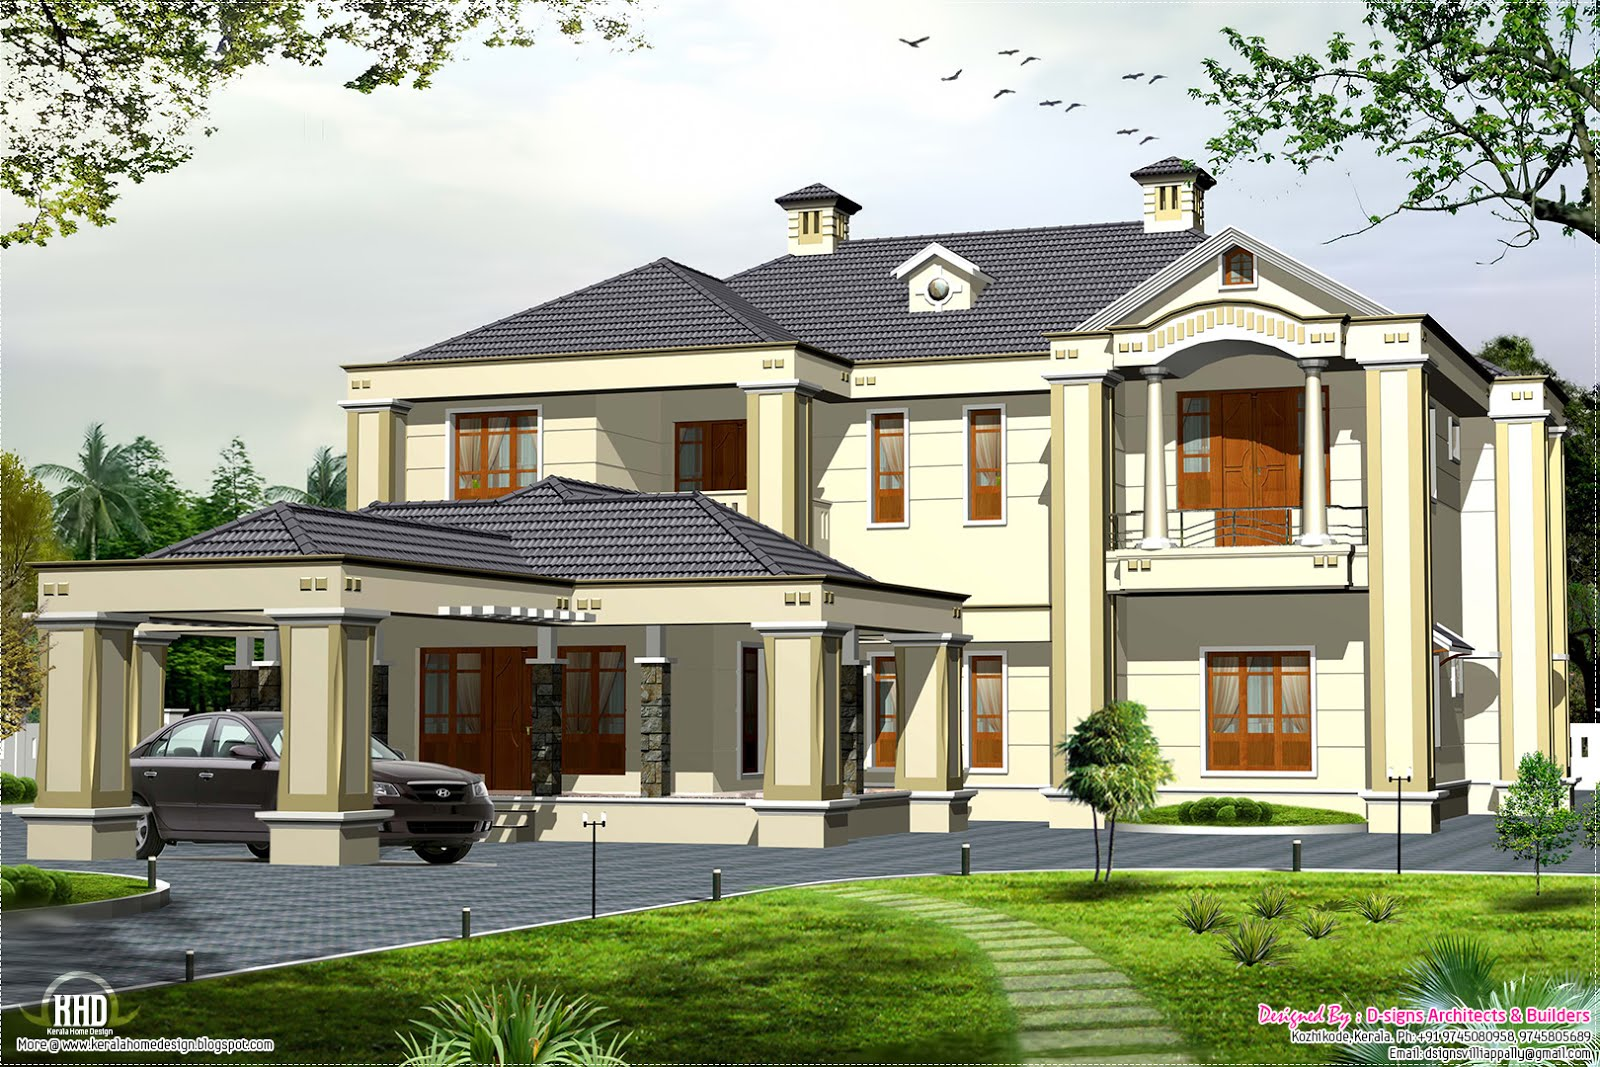 colonial style 5 bedroom victorian style house kerala home design and floor plans. Black Bedroom Furniture Sets. Home Design Ideas